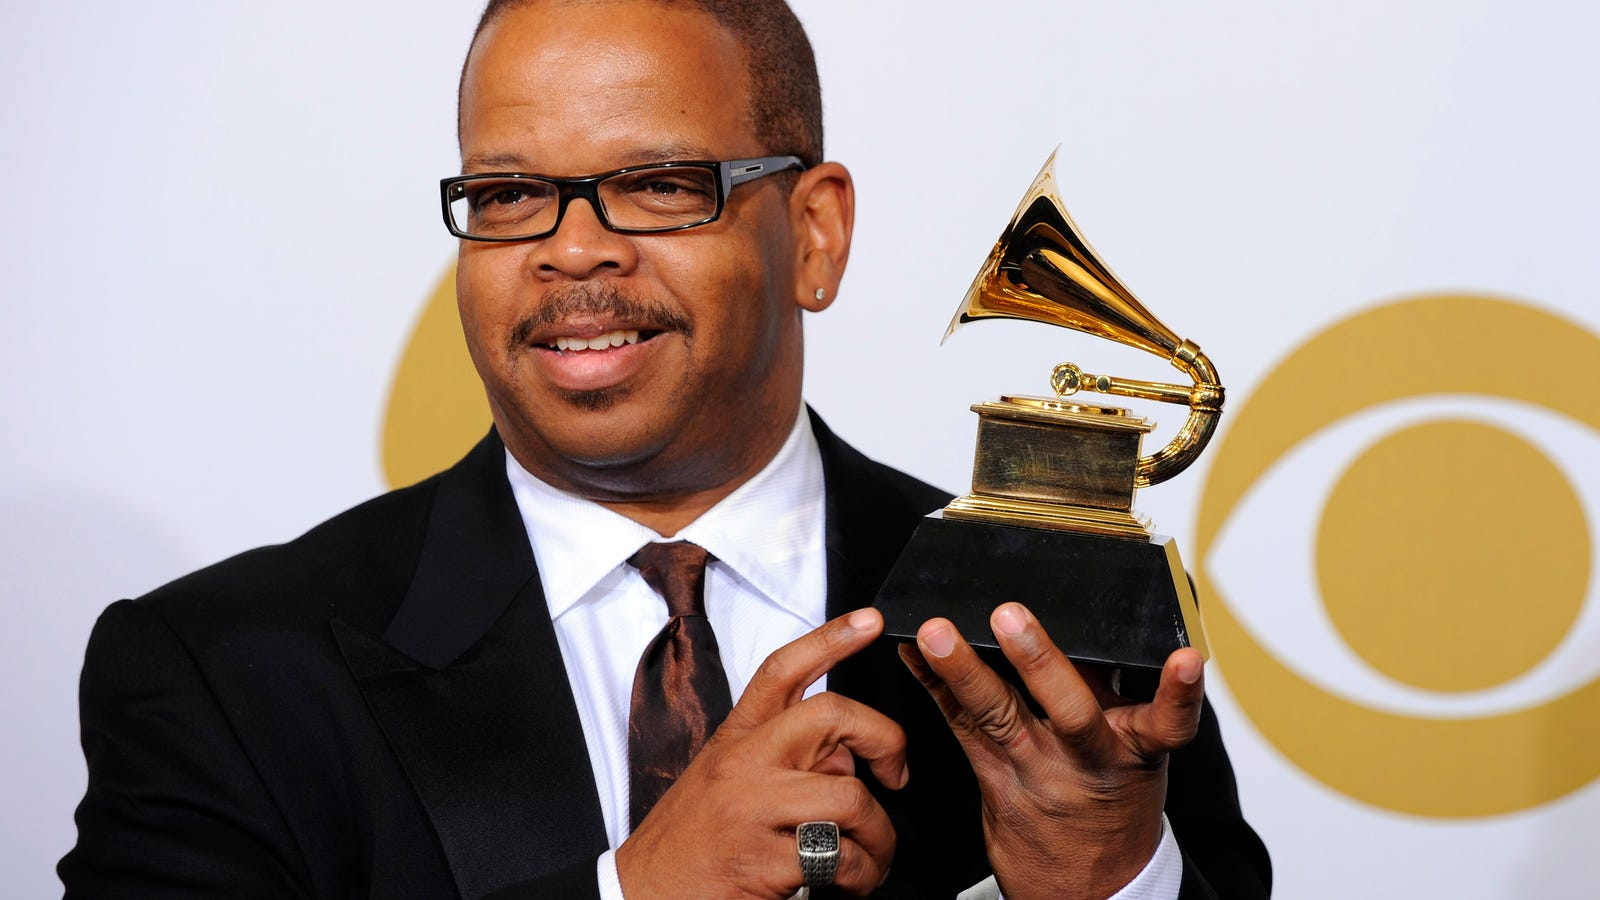 Five-Time Grammy Award Winner Terence Blanchard Tapped as First Black Composer at Metropolitan Opera in 136 Years